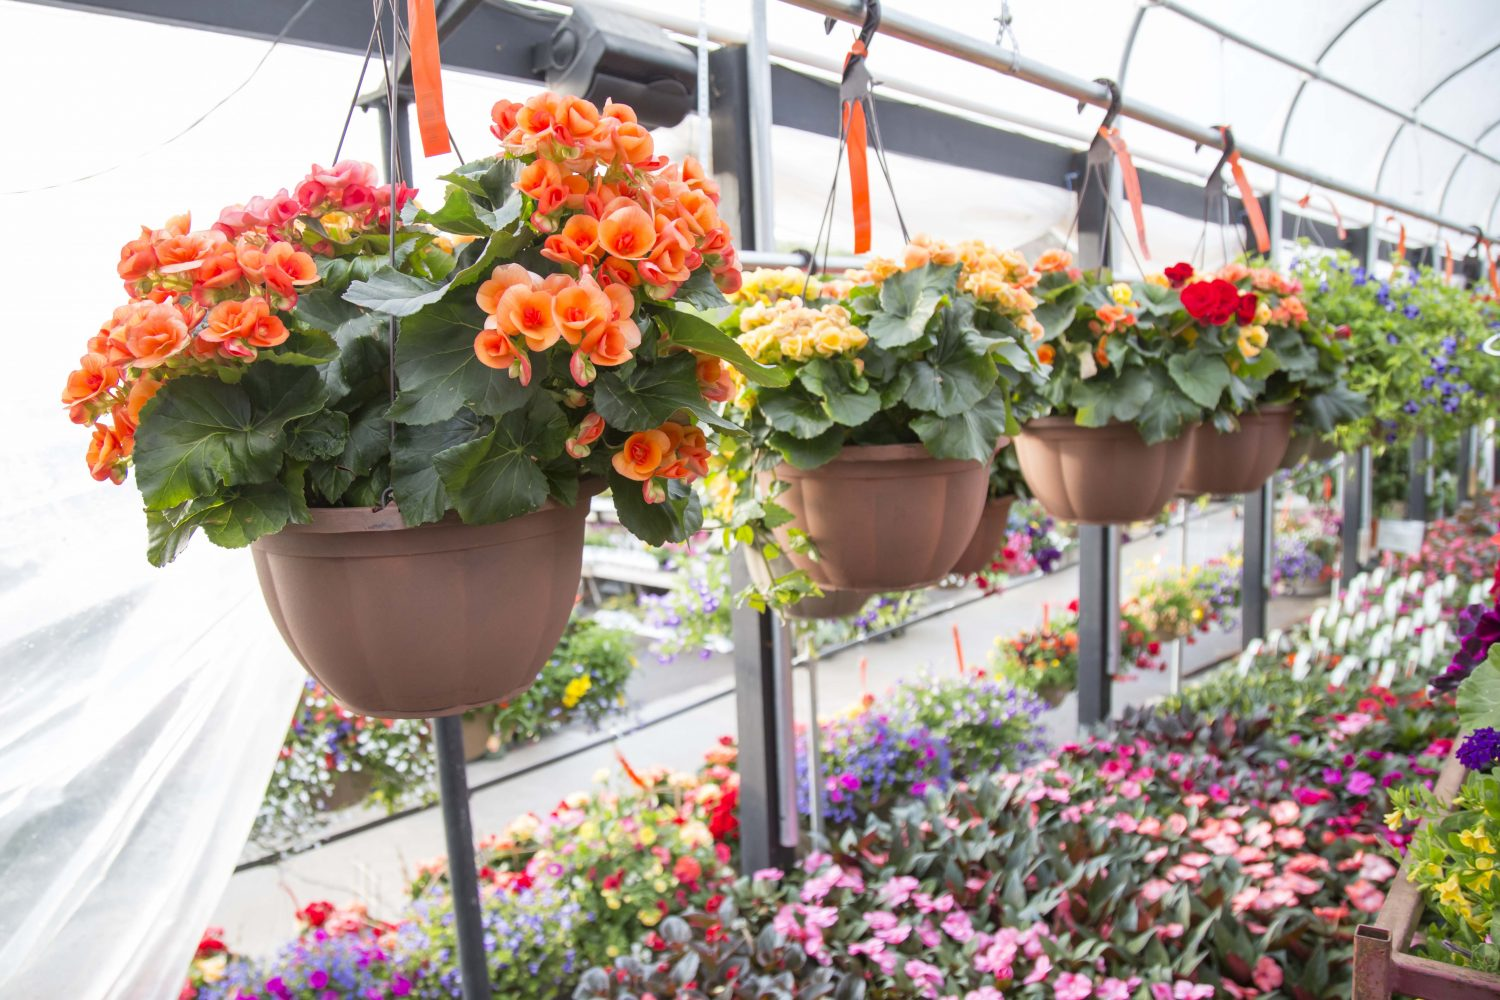 Begonia Hanging Baskets in the greenhouse